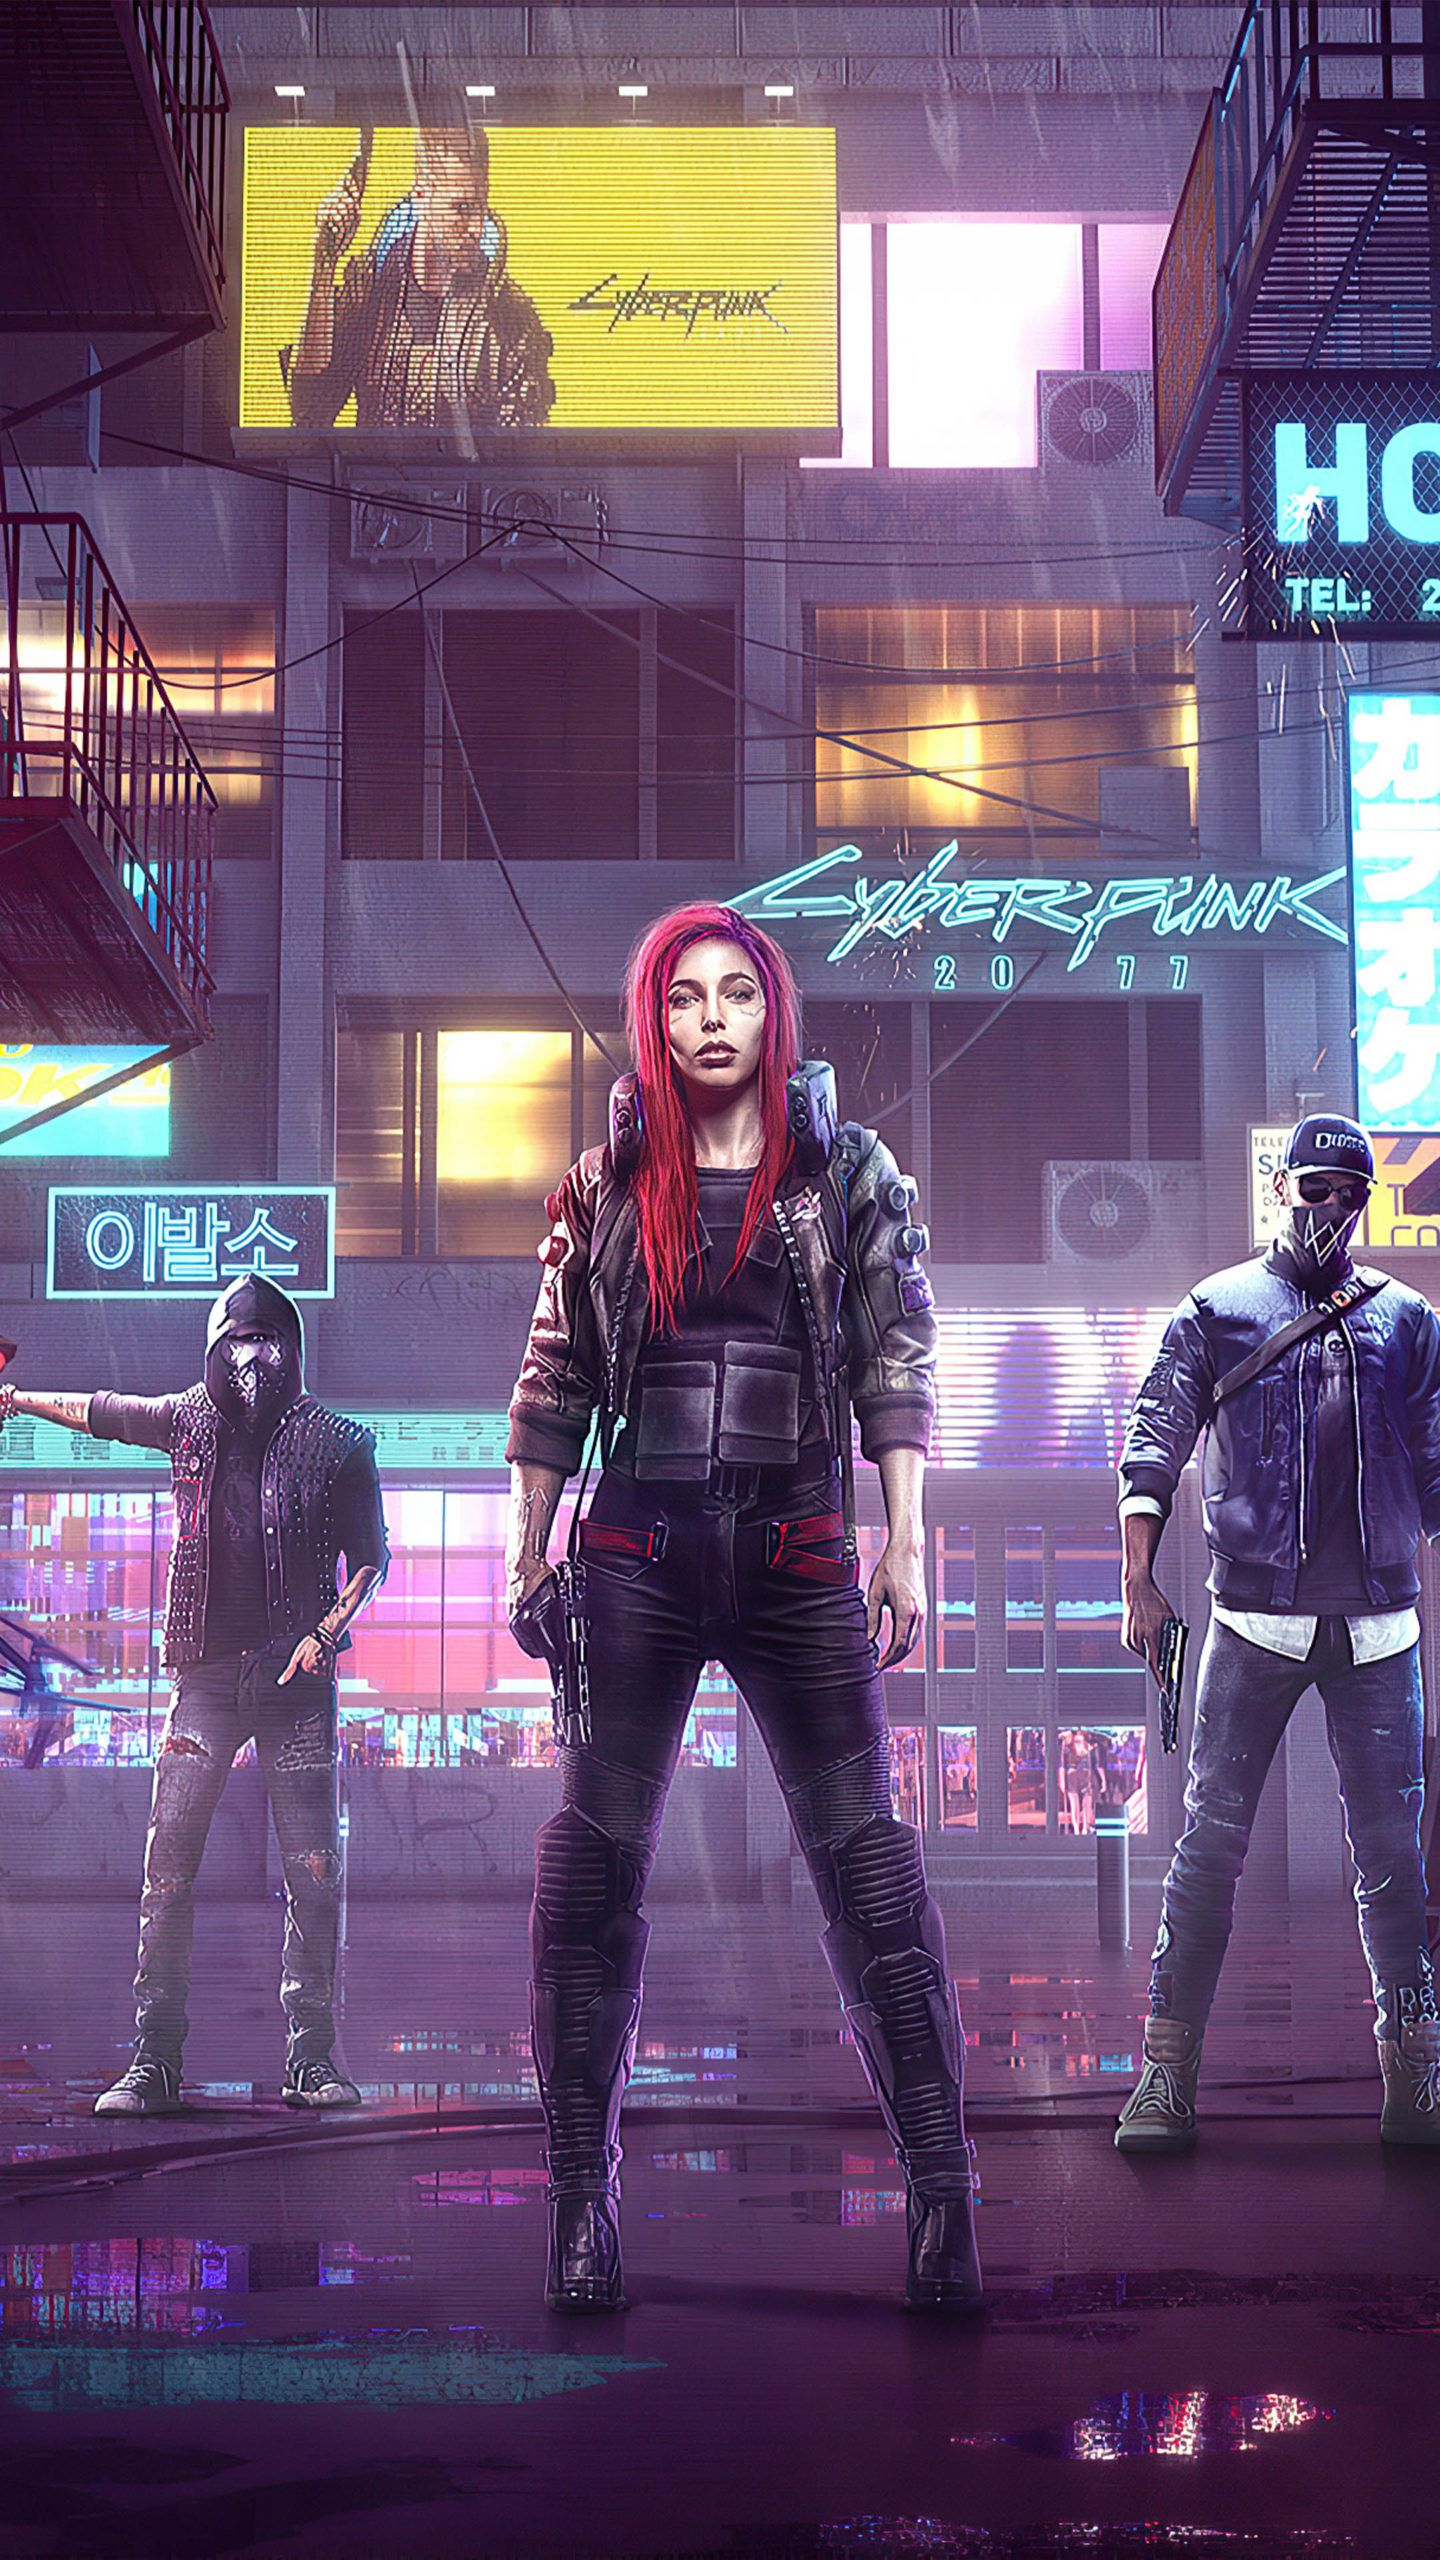 Cyberpunk 2077 New 2020 Game Poster 4k Ultra Hd Mobile Wallpaper In 2020 Cyberpunk 2077 Cyberpunk Cyberpunk Character